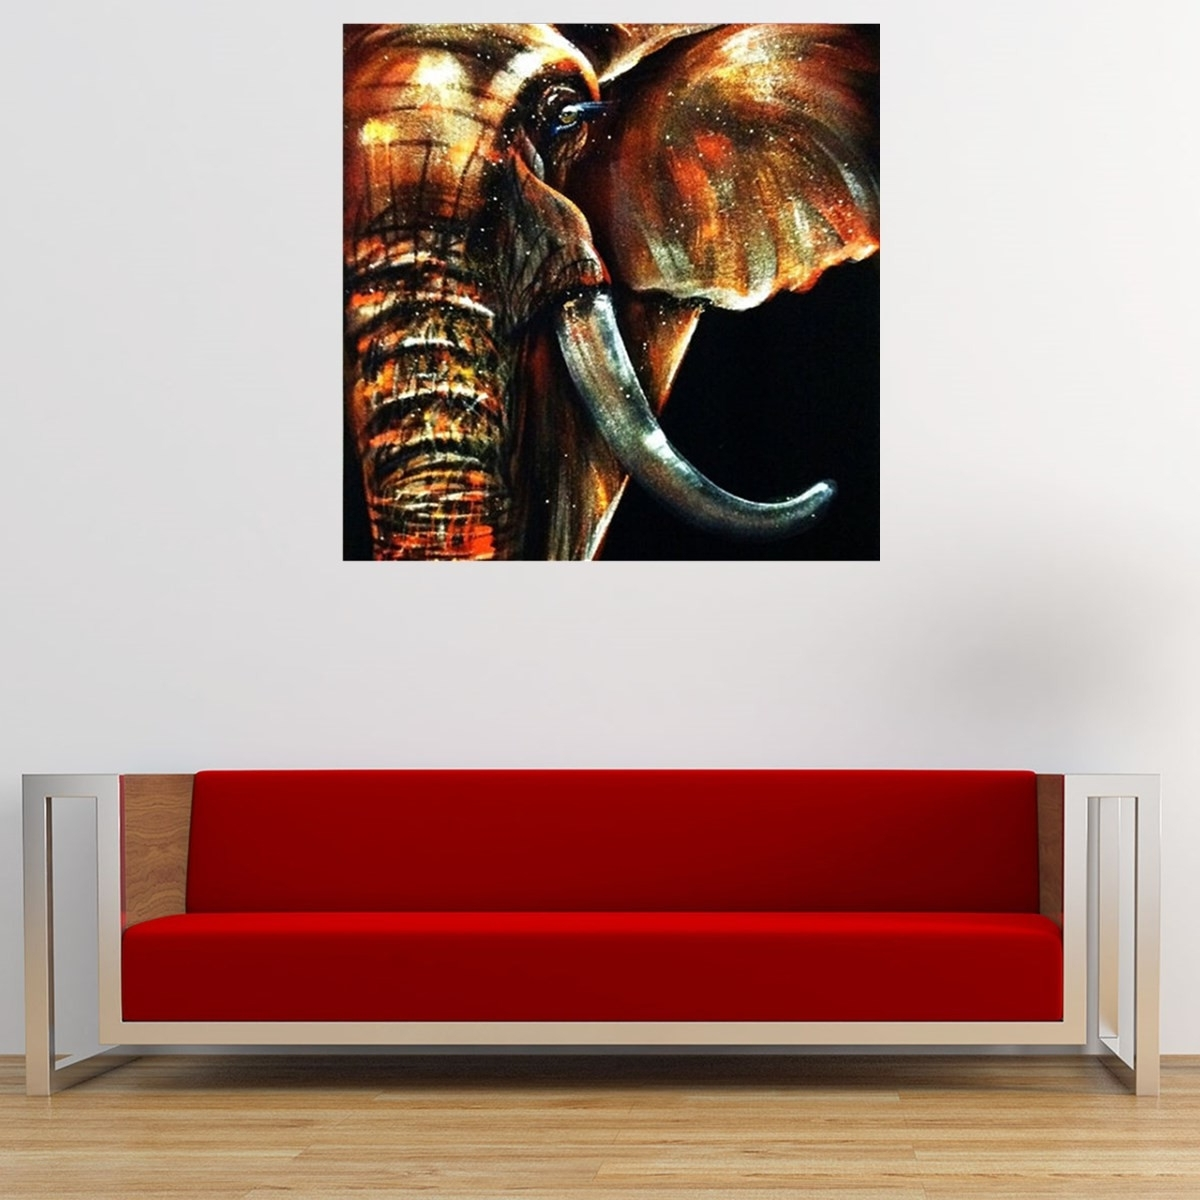 50X50Cm Modern Abstract Huge Elephant Wall Art Decor Oil Painting On Regarding Recent Elephant Wall Art (View 6 of 15)